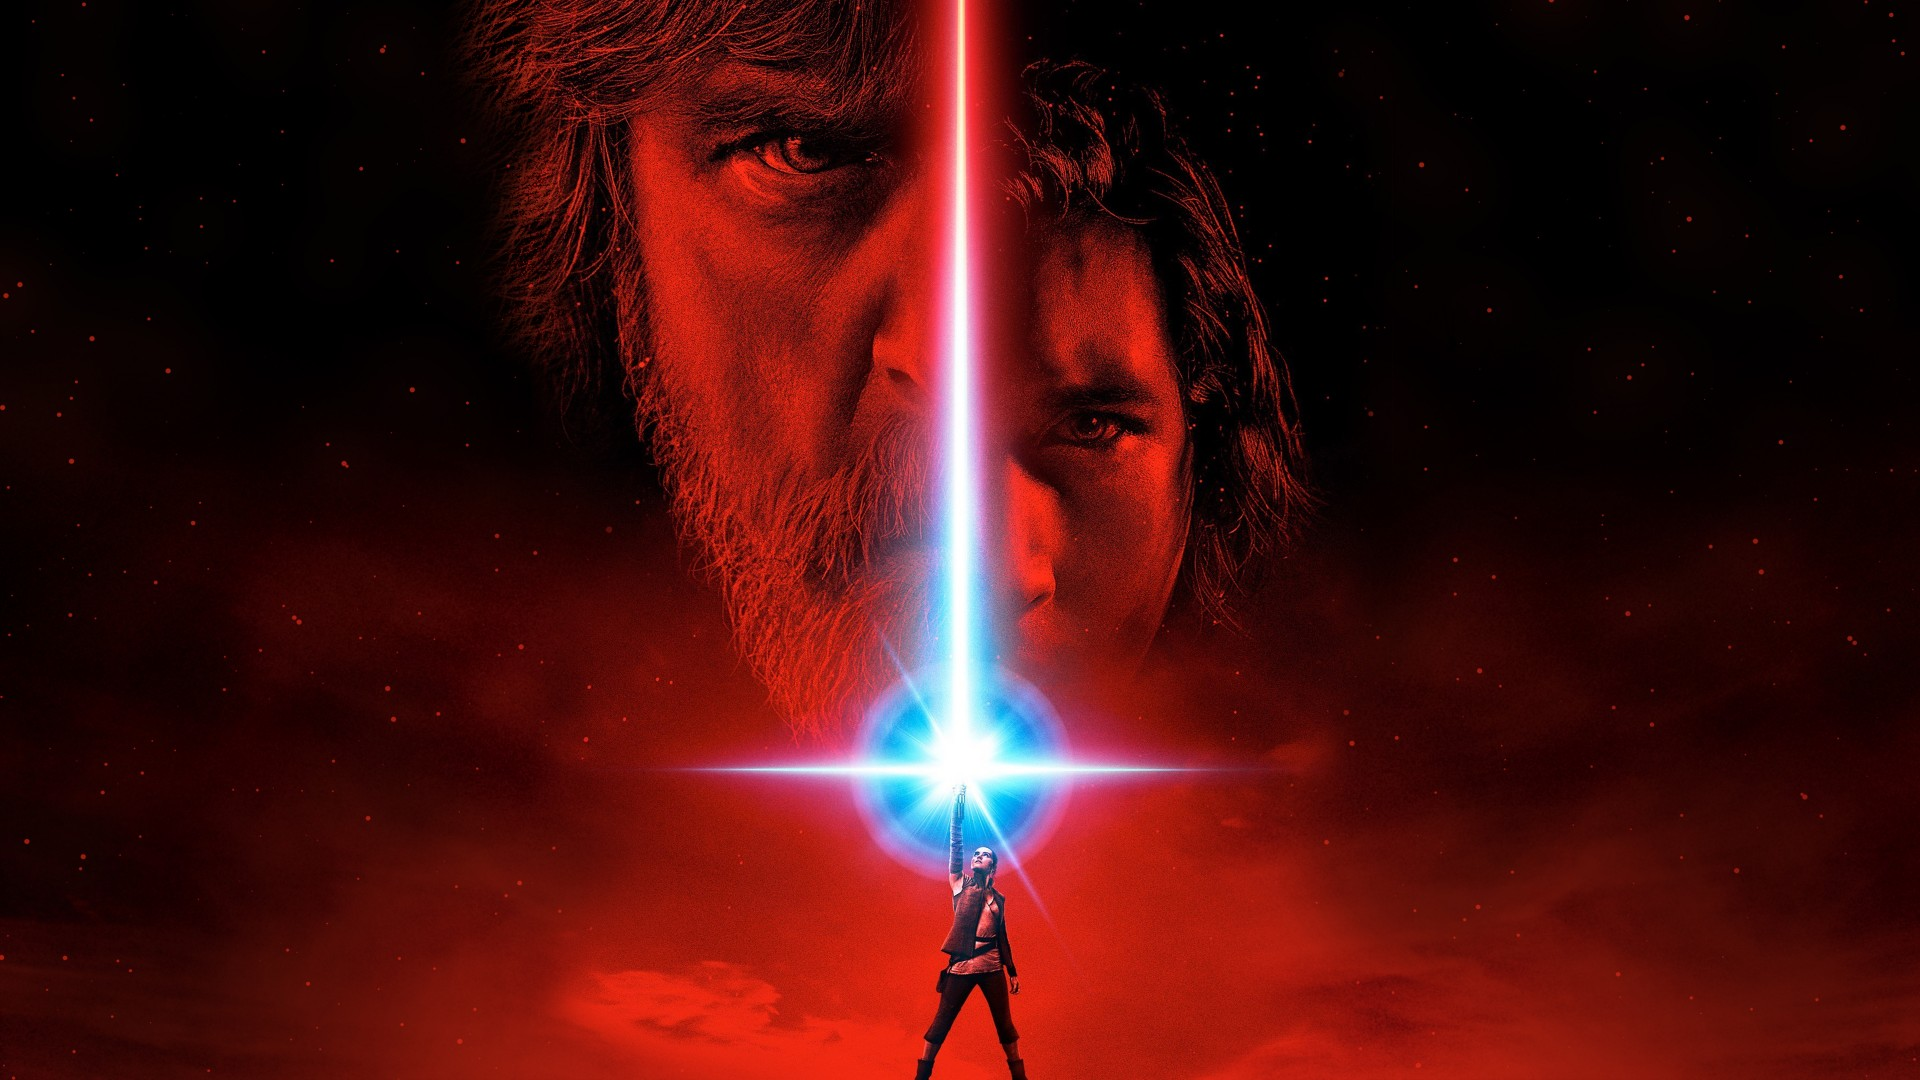 star-wars-the-last-jedi-movie-2017-ryan-jonson